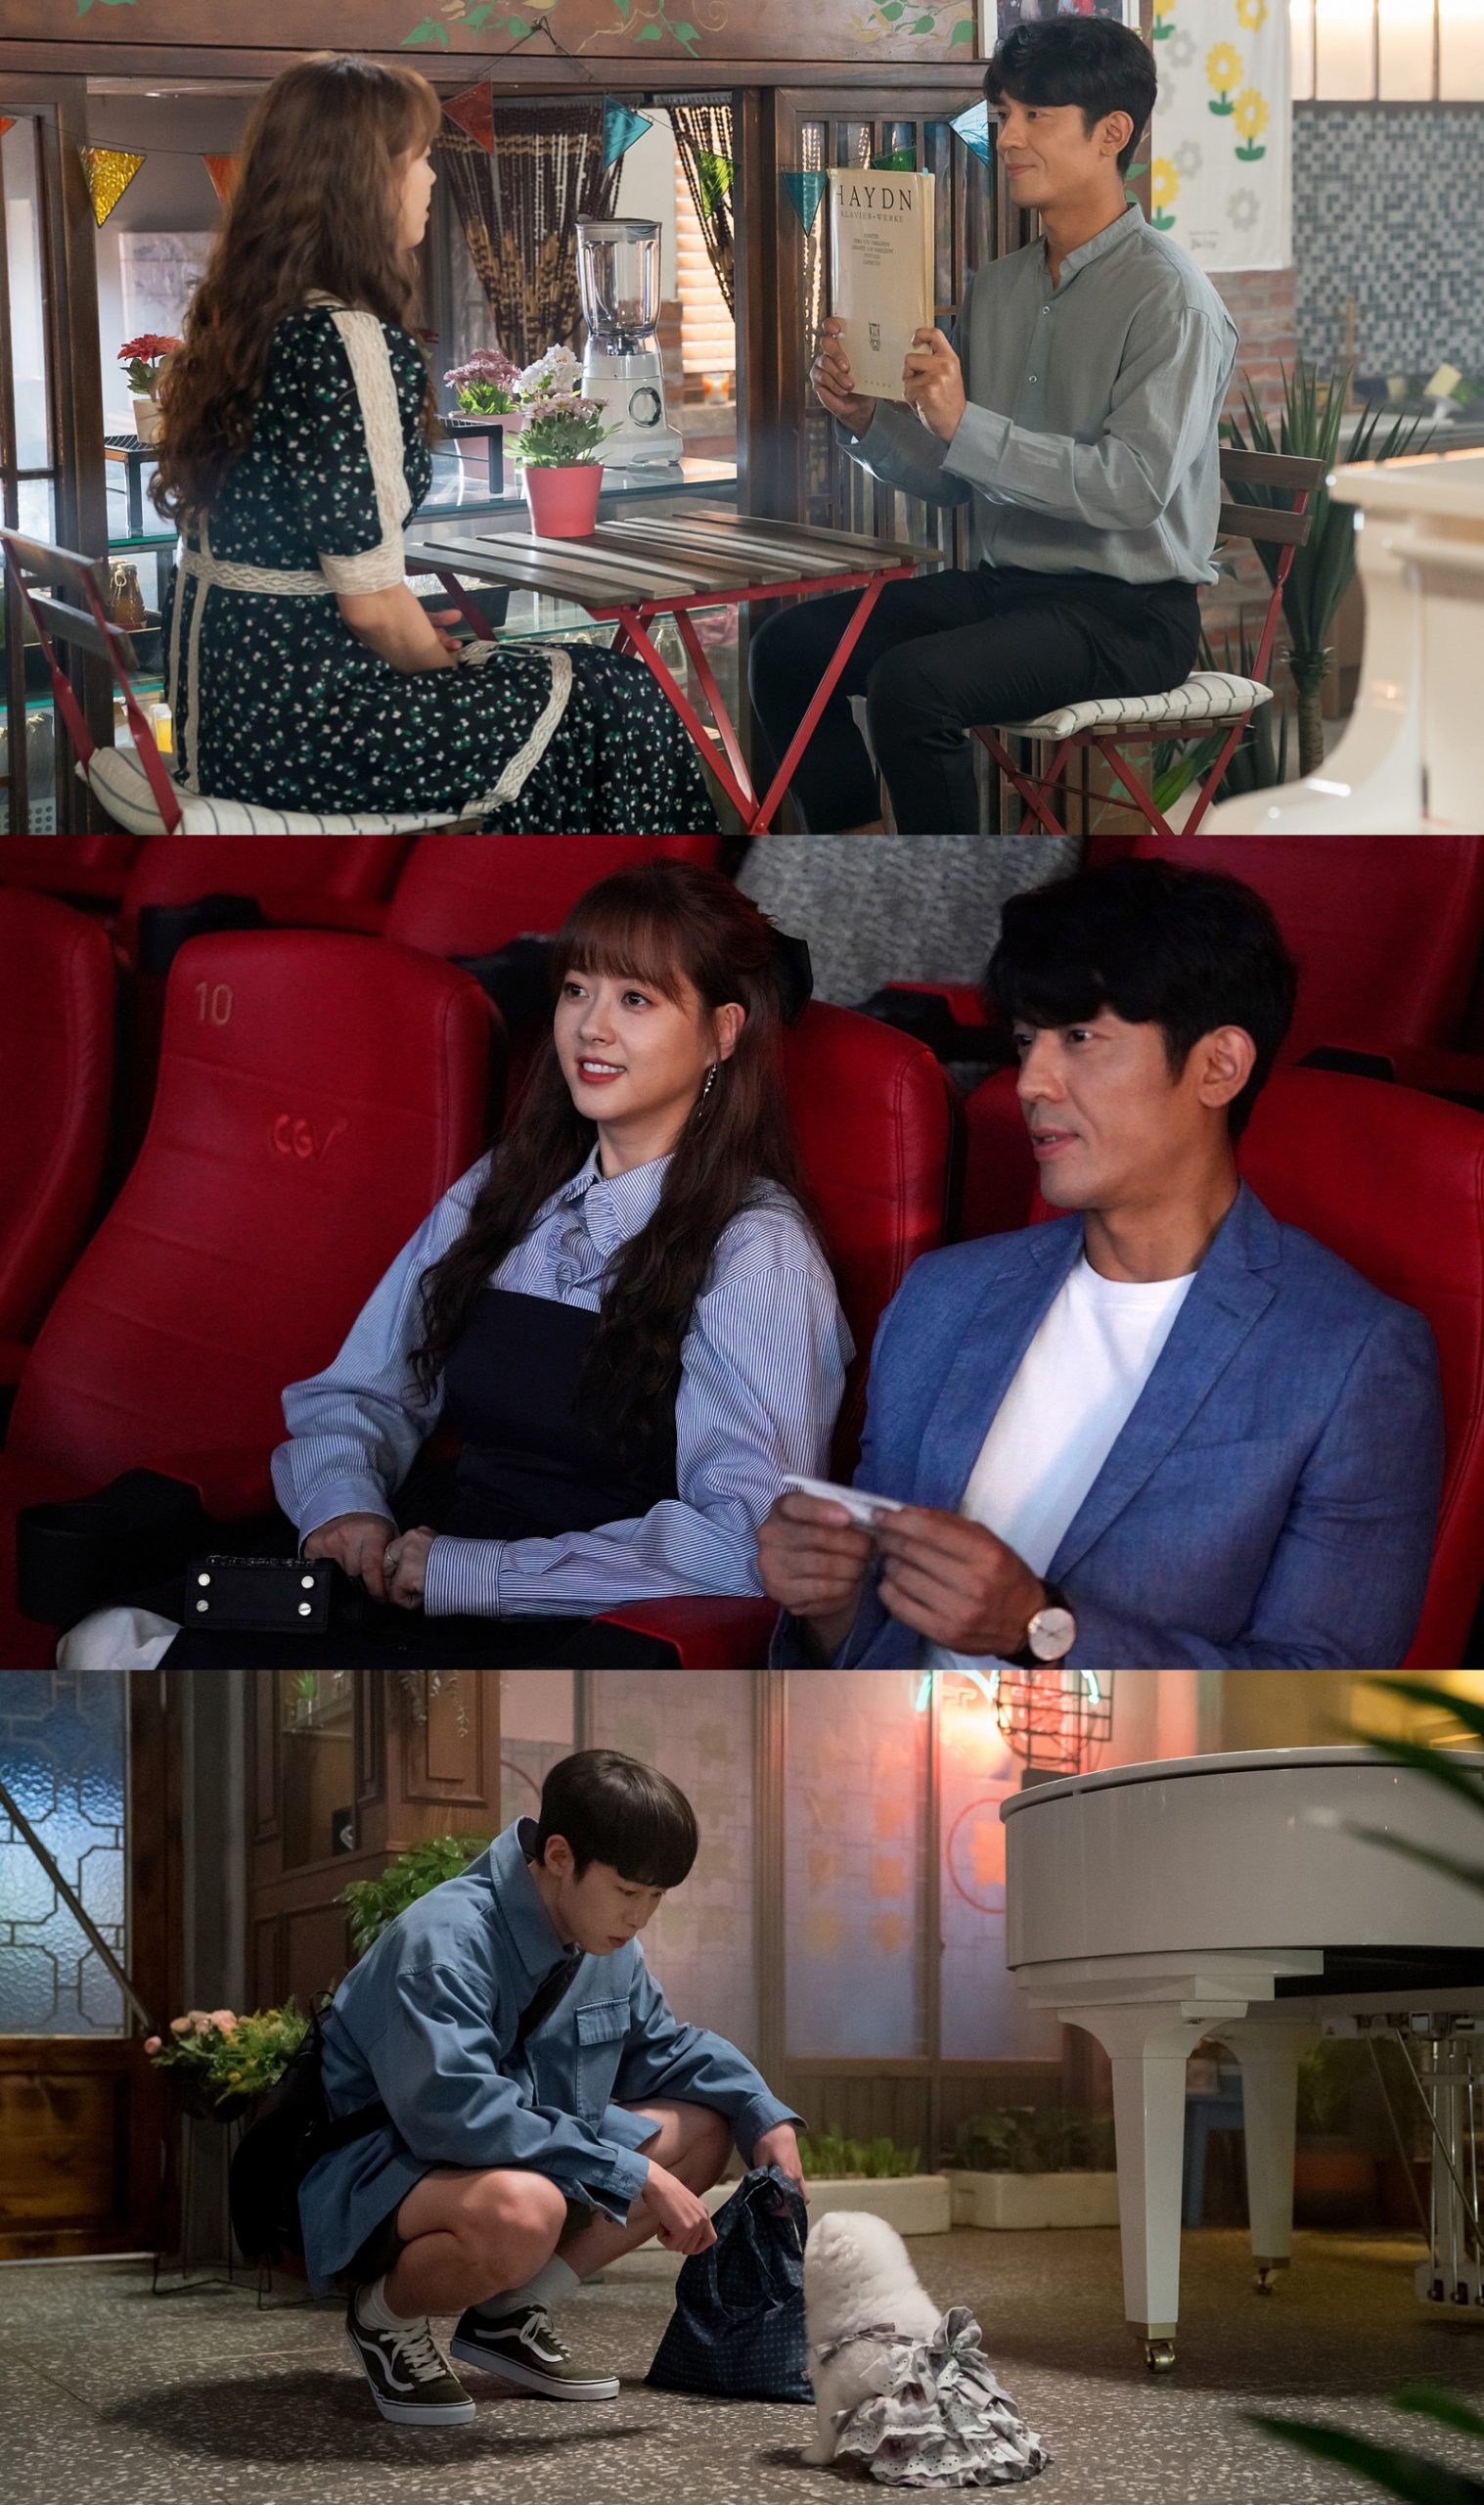 'Do Do Sol Sol La La Sol' Go Ara and Kim Joo-heon went to theater together 'Lee Jae-wook jealousy explosion'